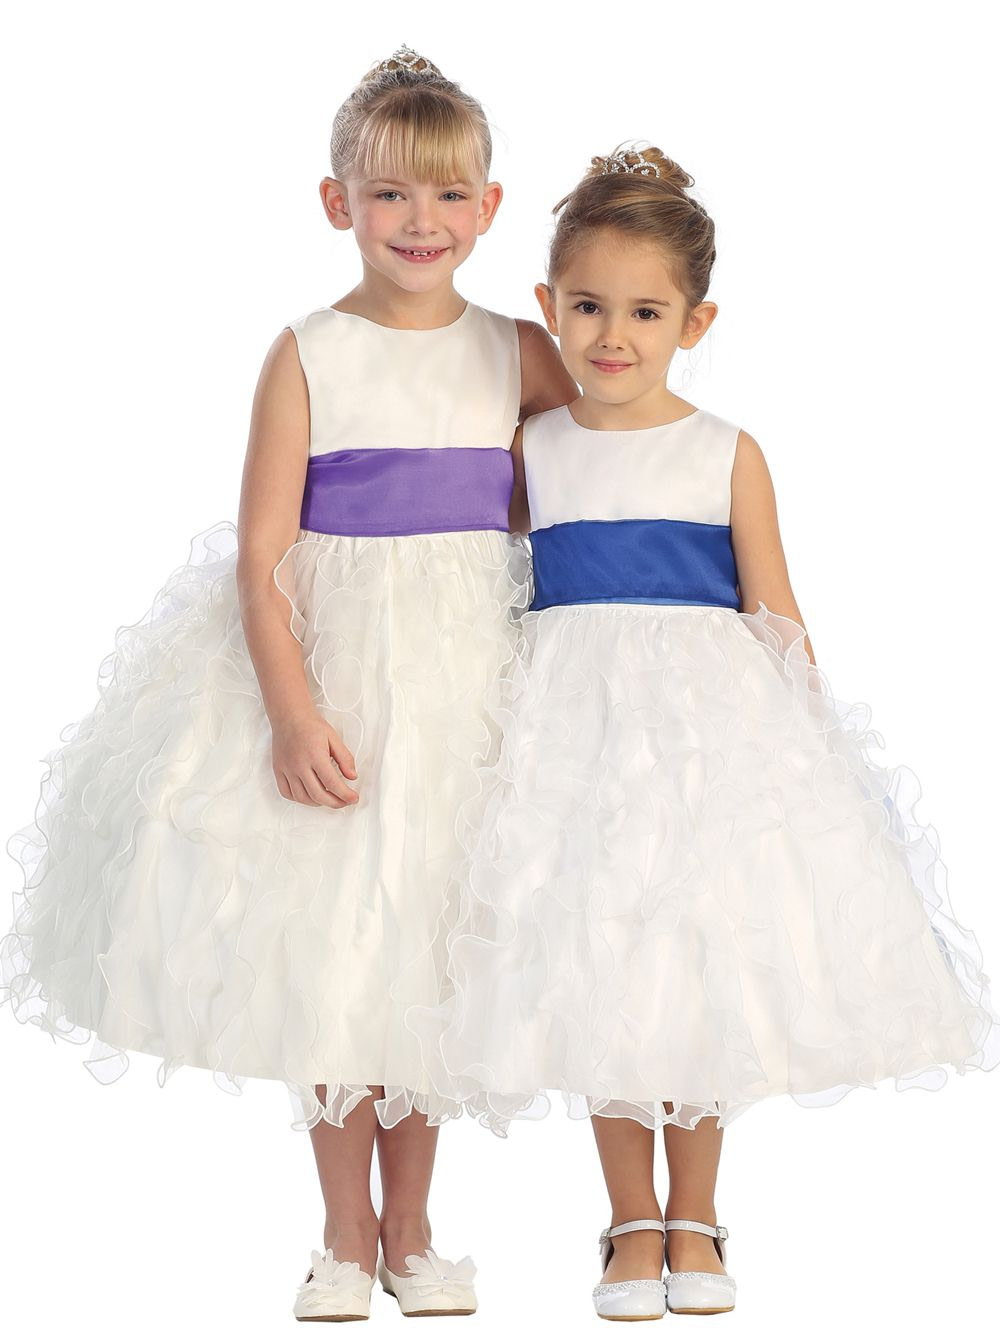 available-at-spotlight-formal-wear-ruffle-flower-girl-dresses-with-different-sash-color-options.jpg